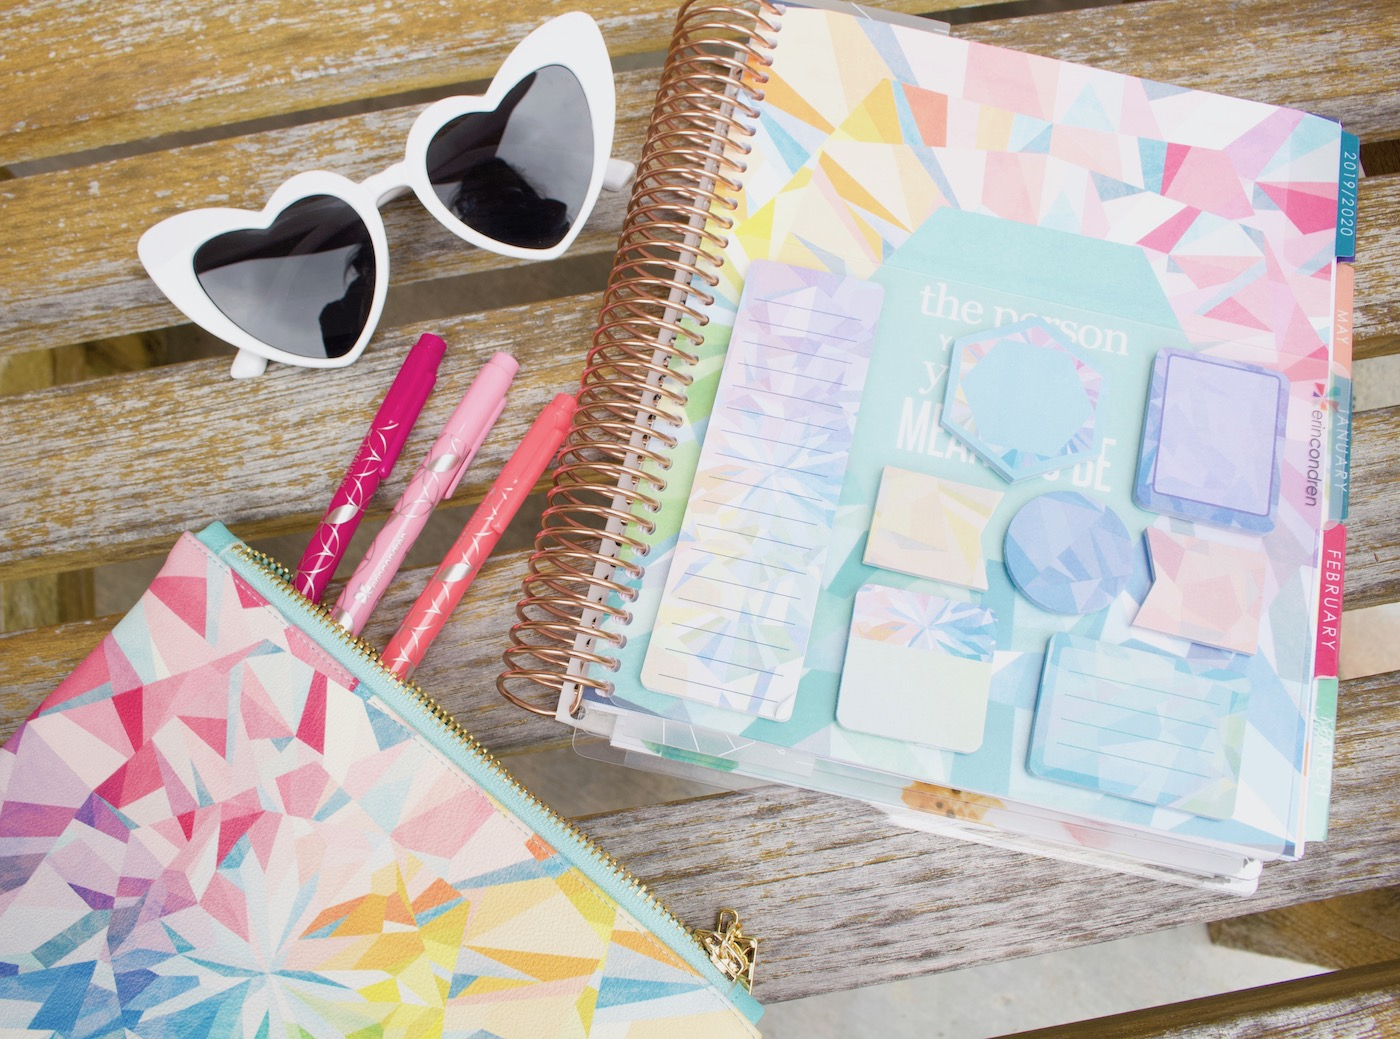 Erin Condren Planny Pack Kaleidoscope and sticky notes